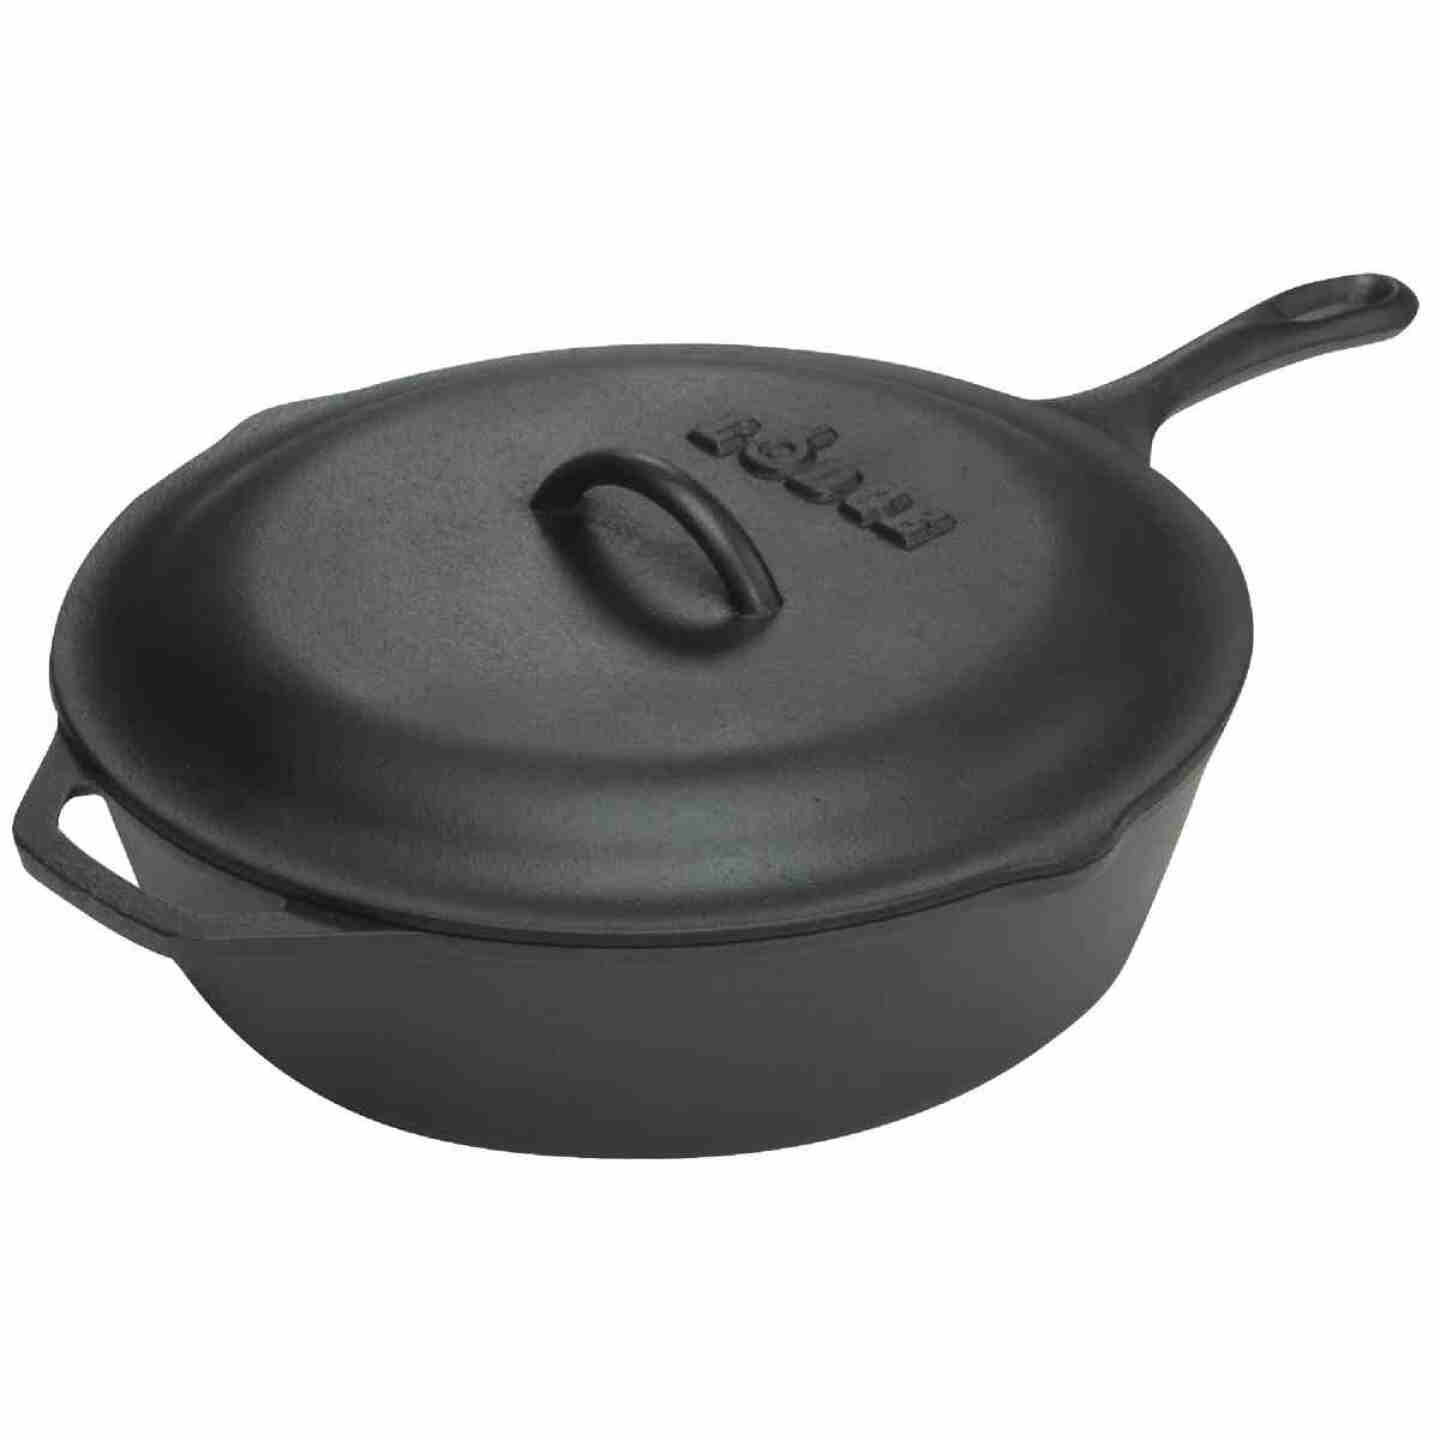 Lodge 10-1/4 In. 3 Qt. Cast Iron Chicken Fryer Image 1